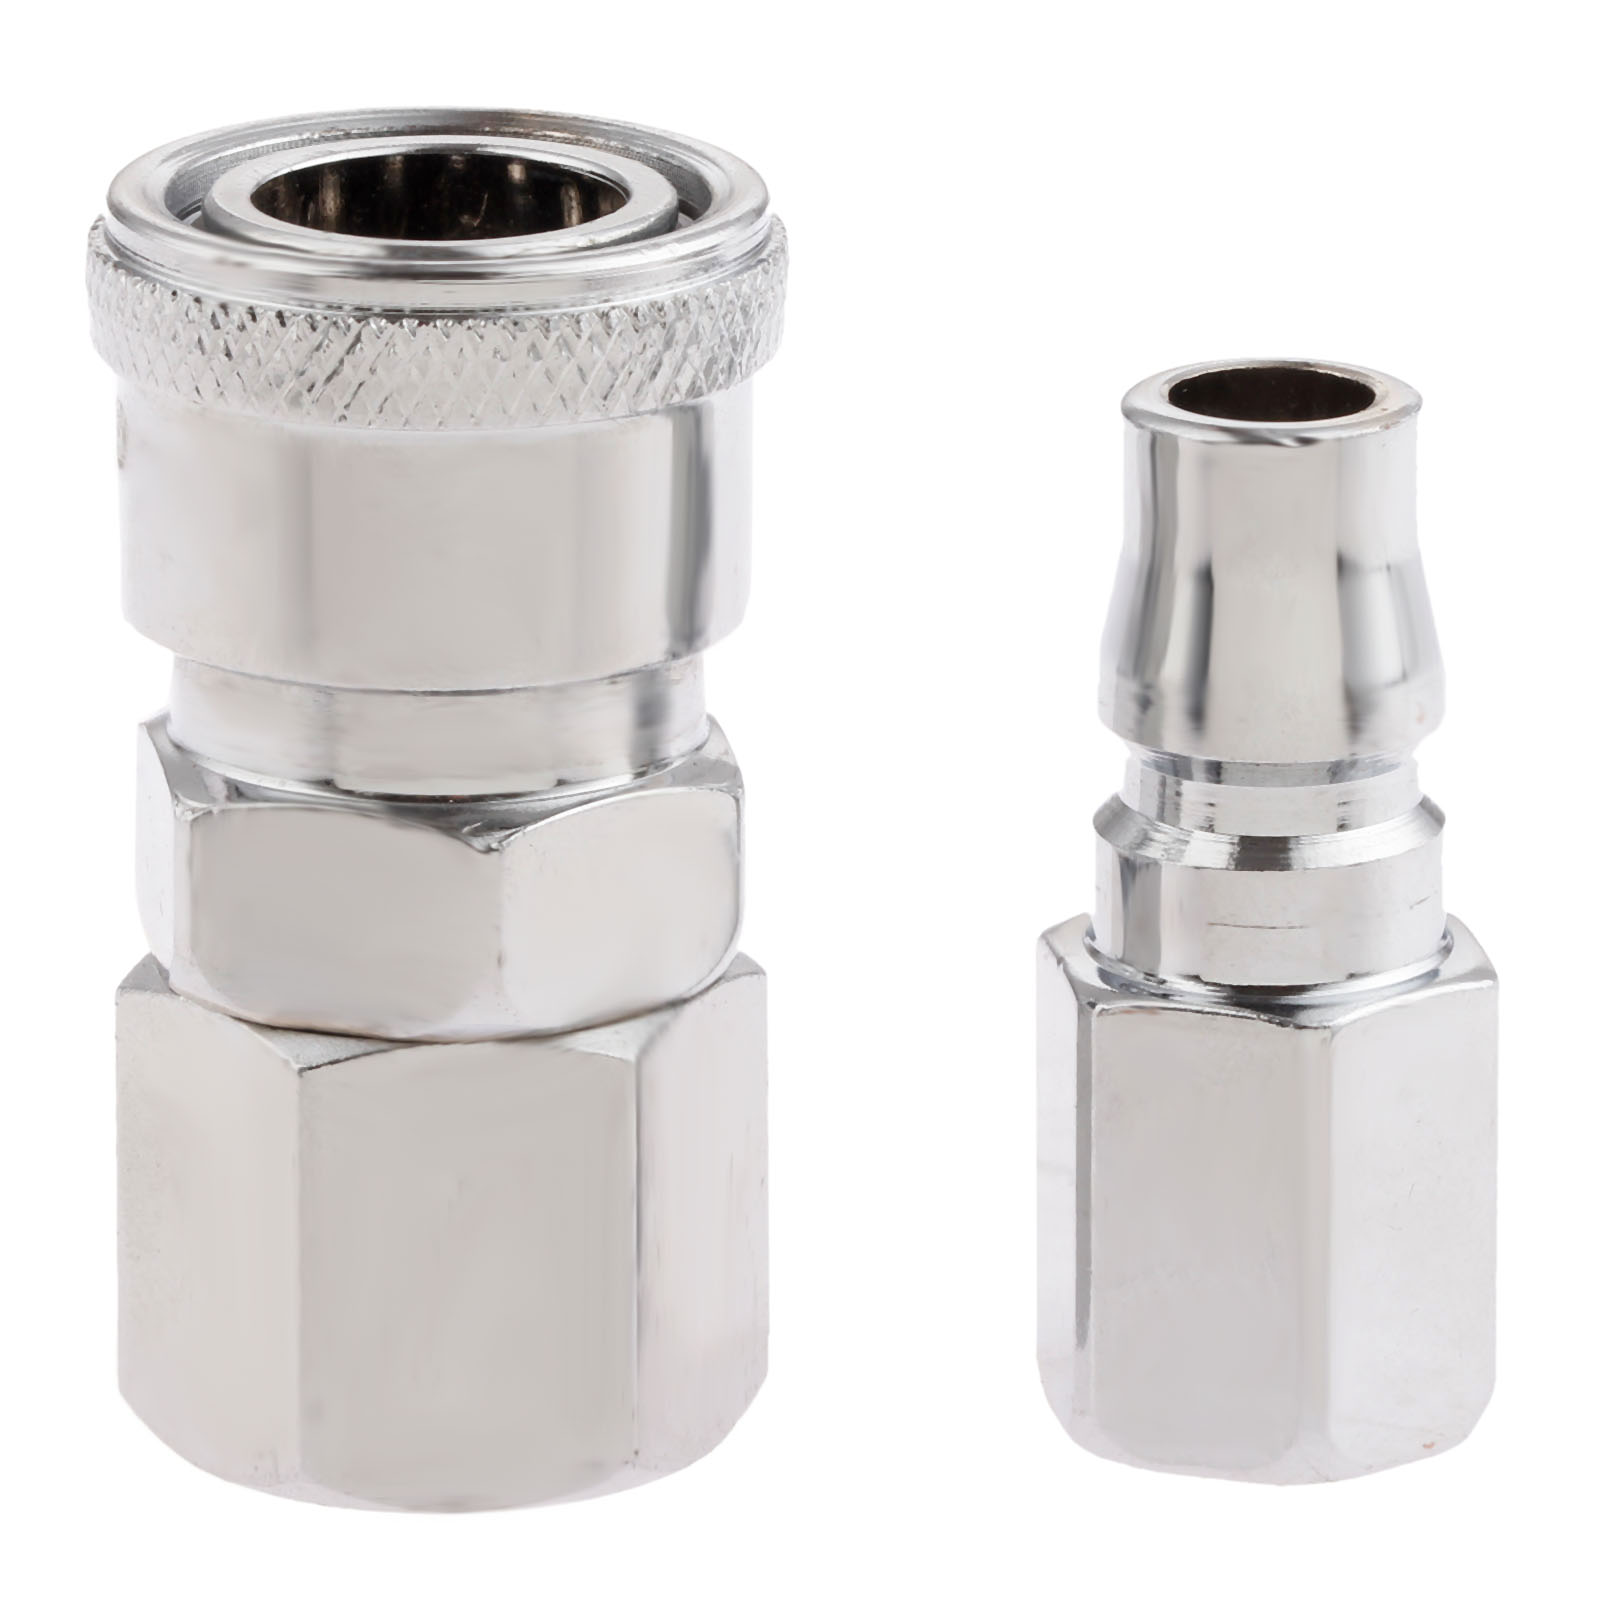 2Pcs Pneumatic Fittings Euro Air Line Hose Compressor Connector Quick Release 1/4BSP Female Thread Coupler Connector Fittings 3 8 bsp female air compressor pneumatic quick coupler connector socket fittings set